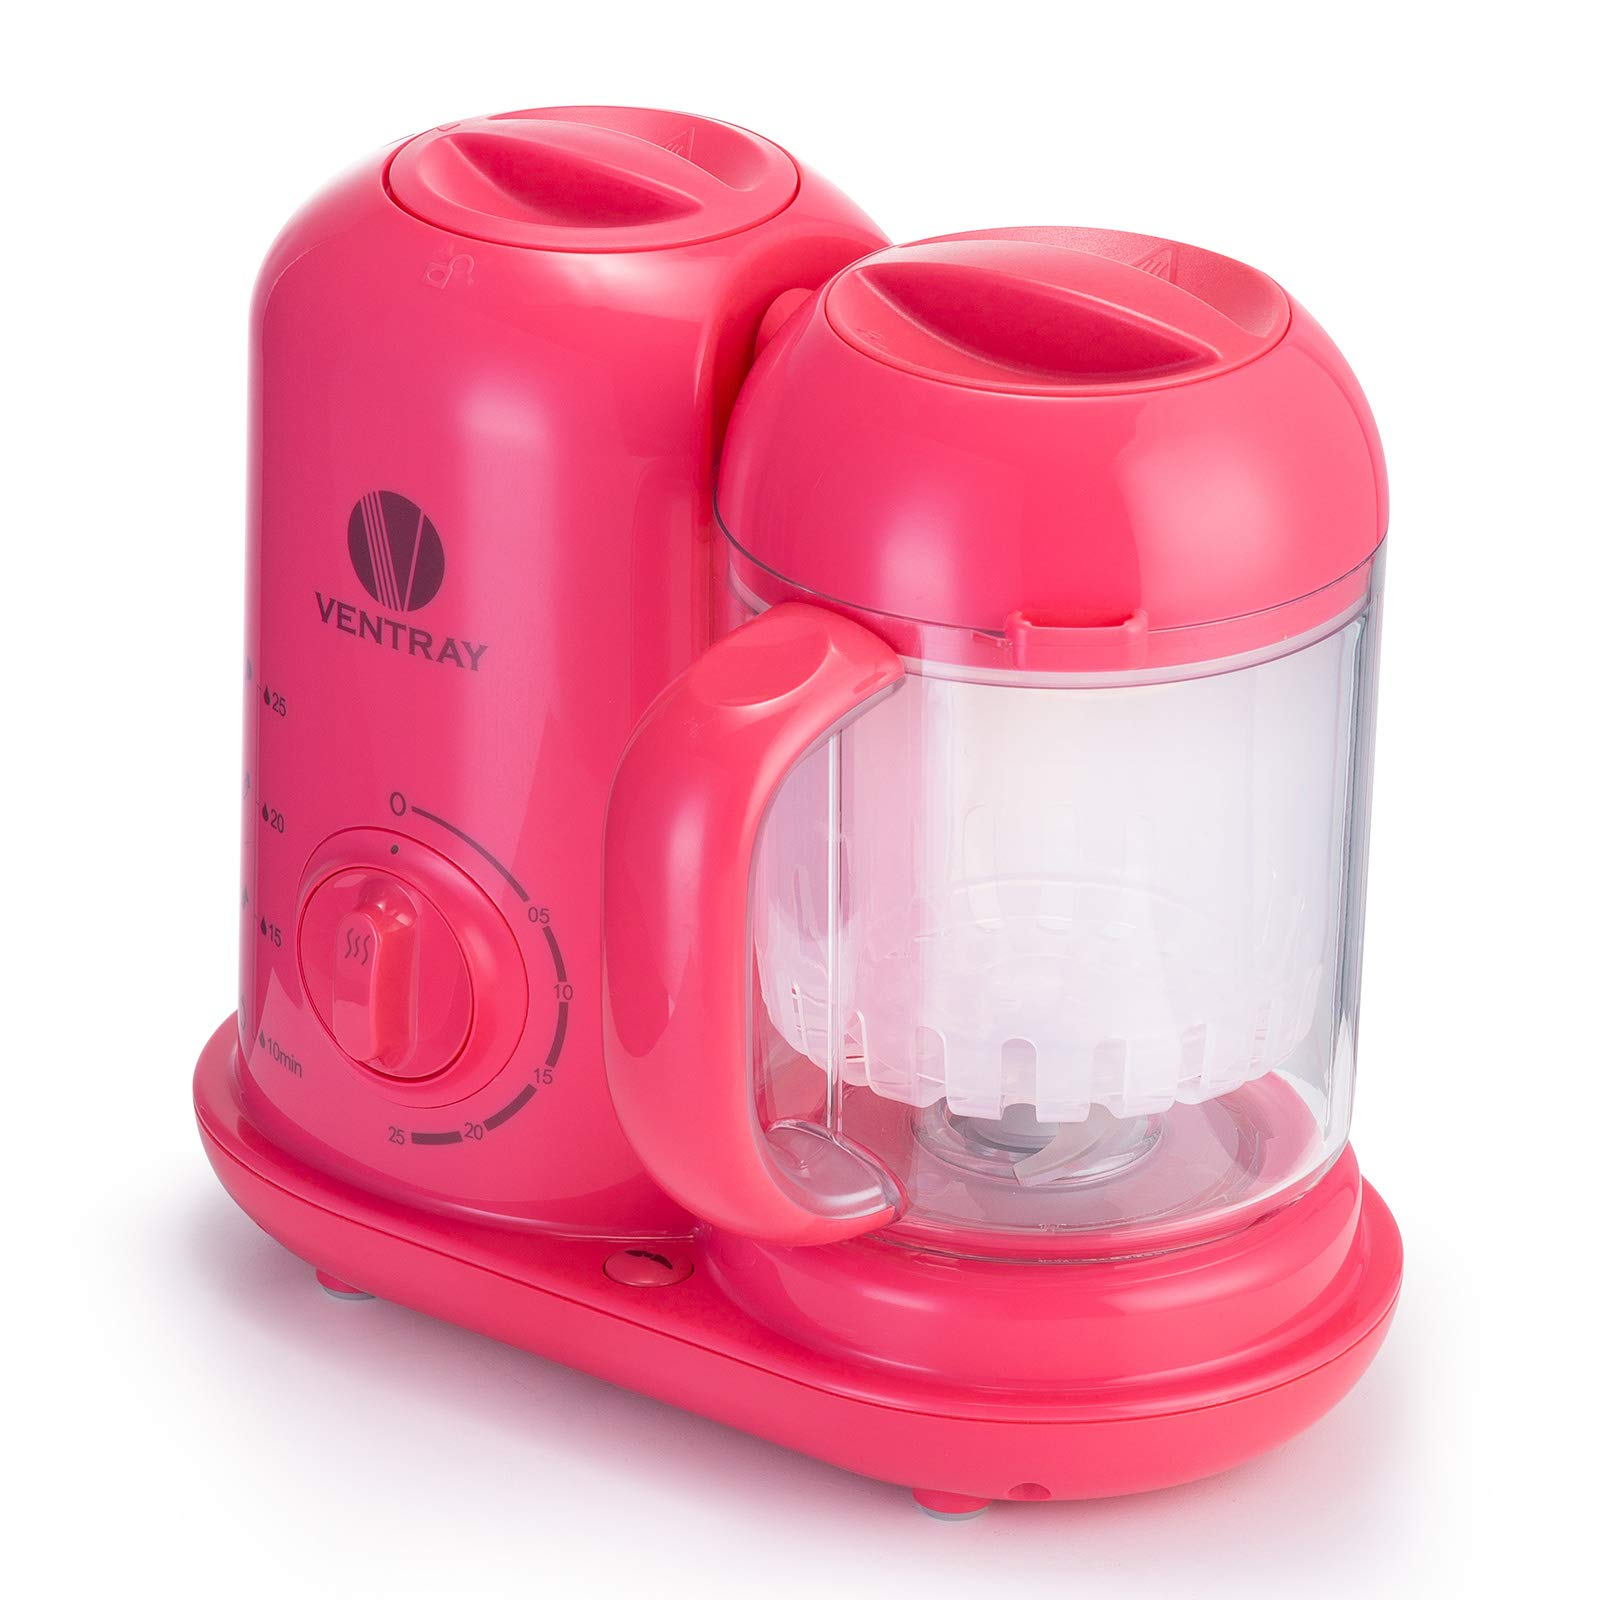 Ventray BabyGrow 100 Pink - All-in-one Blender and Steamer Baby Food Maker - Makes Food for Infants and Toddlers